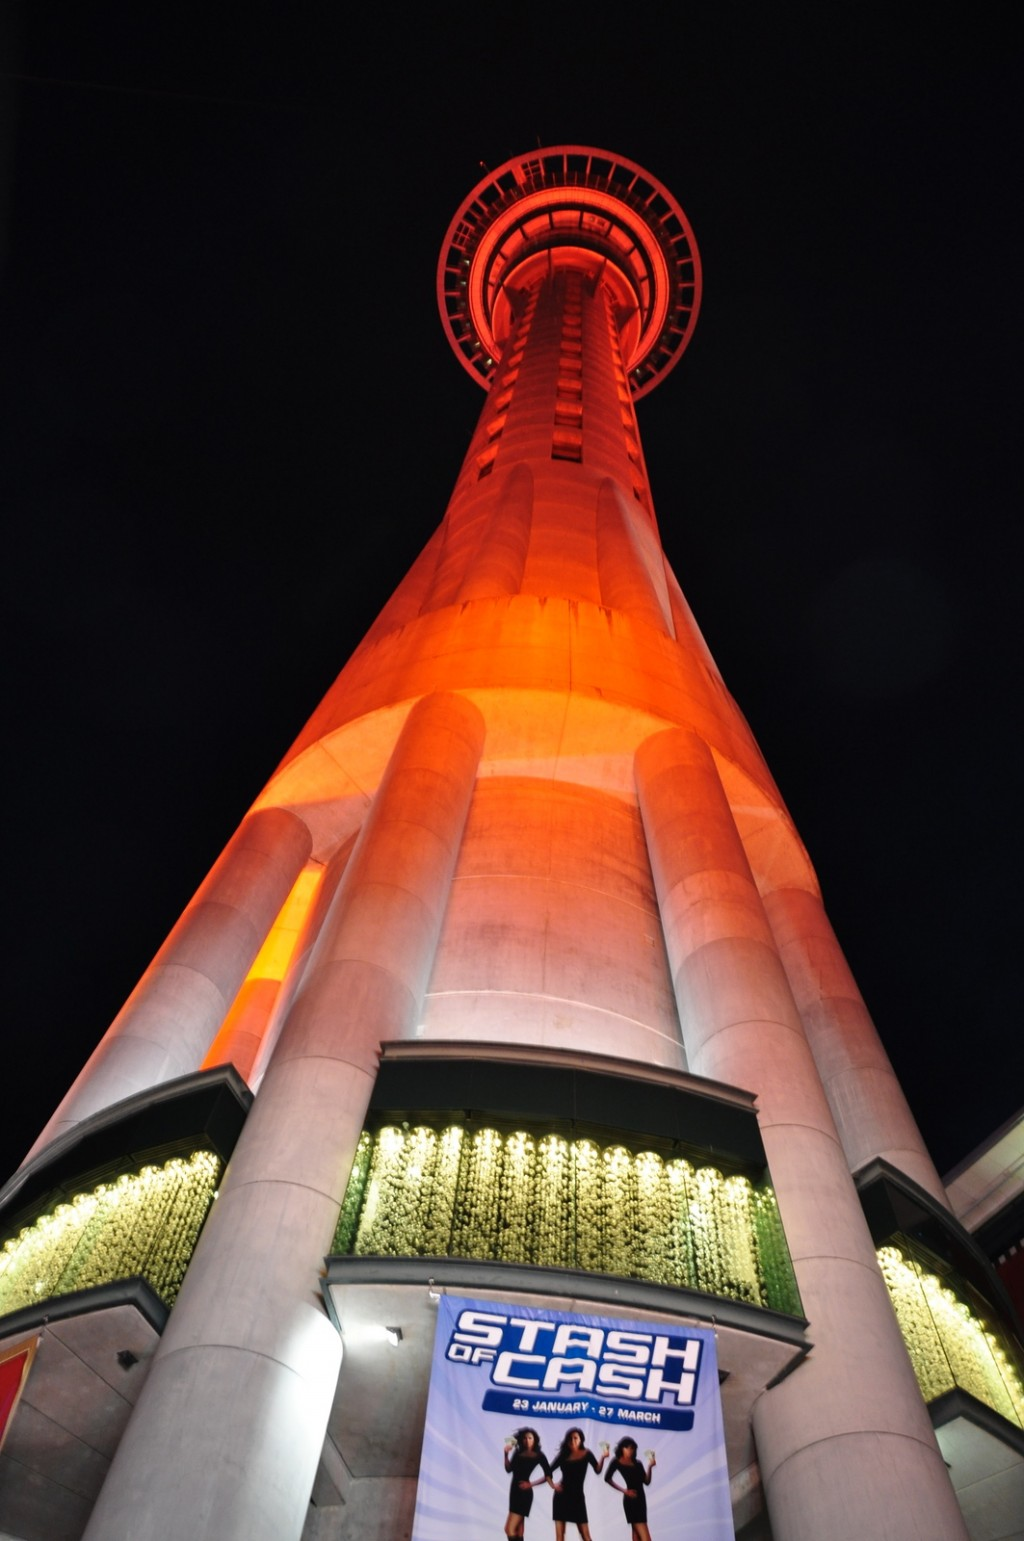 The Sky Tower is lit up beautifully at night